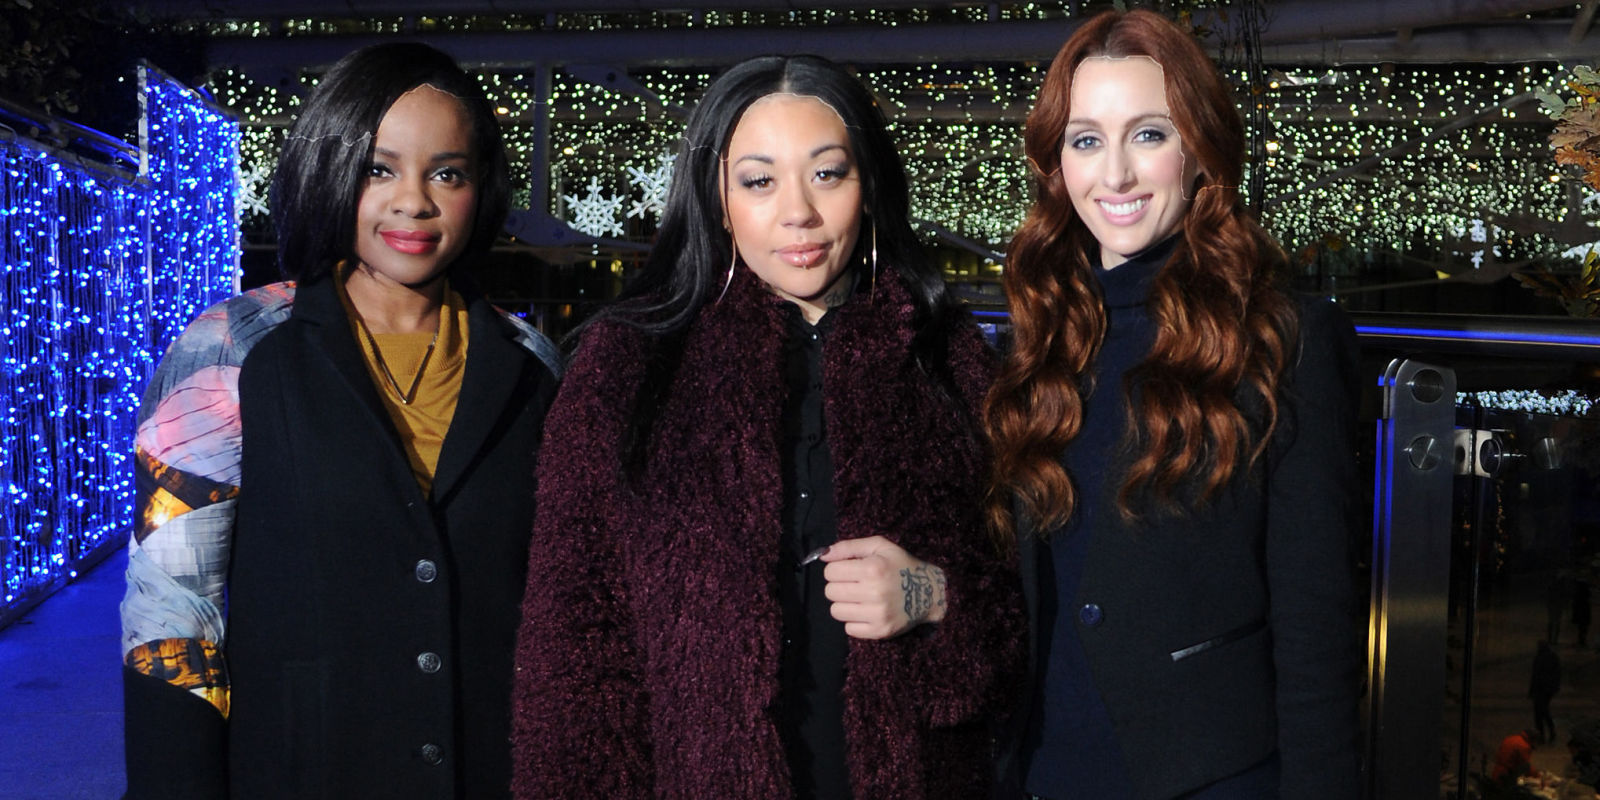 Mutya Buena wins rights to Sugababes name Mutya Buena wins rights to Sugababes name new picture